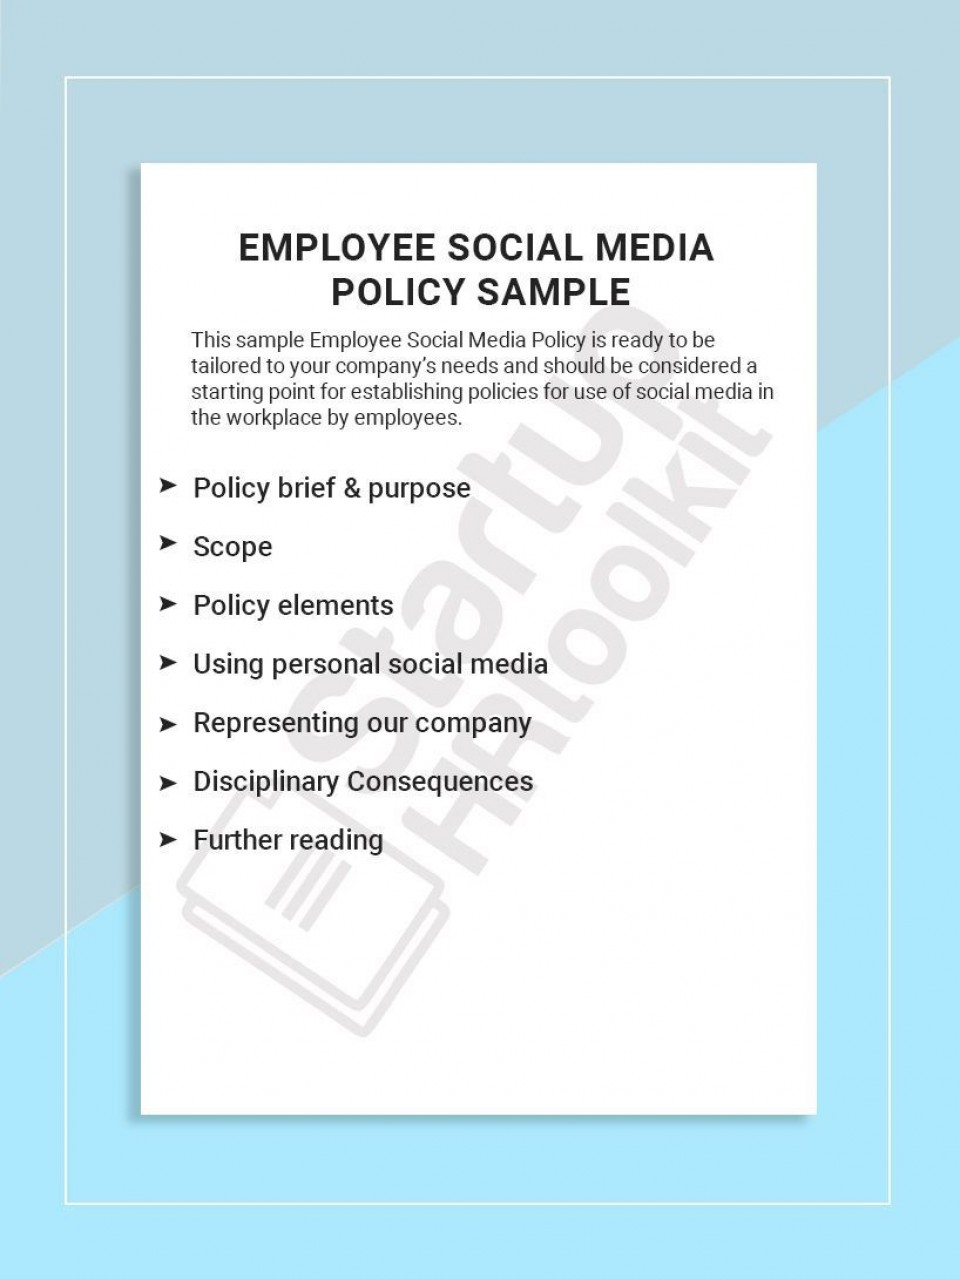 001 Best Social Media Policie Template High Def  Policy For Small Busines Australia Employee Uk Counselor960